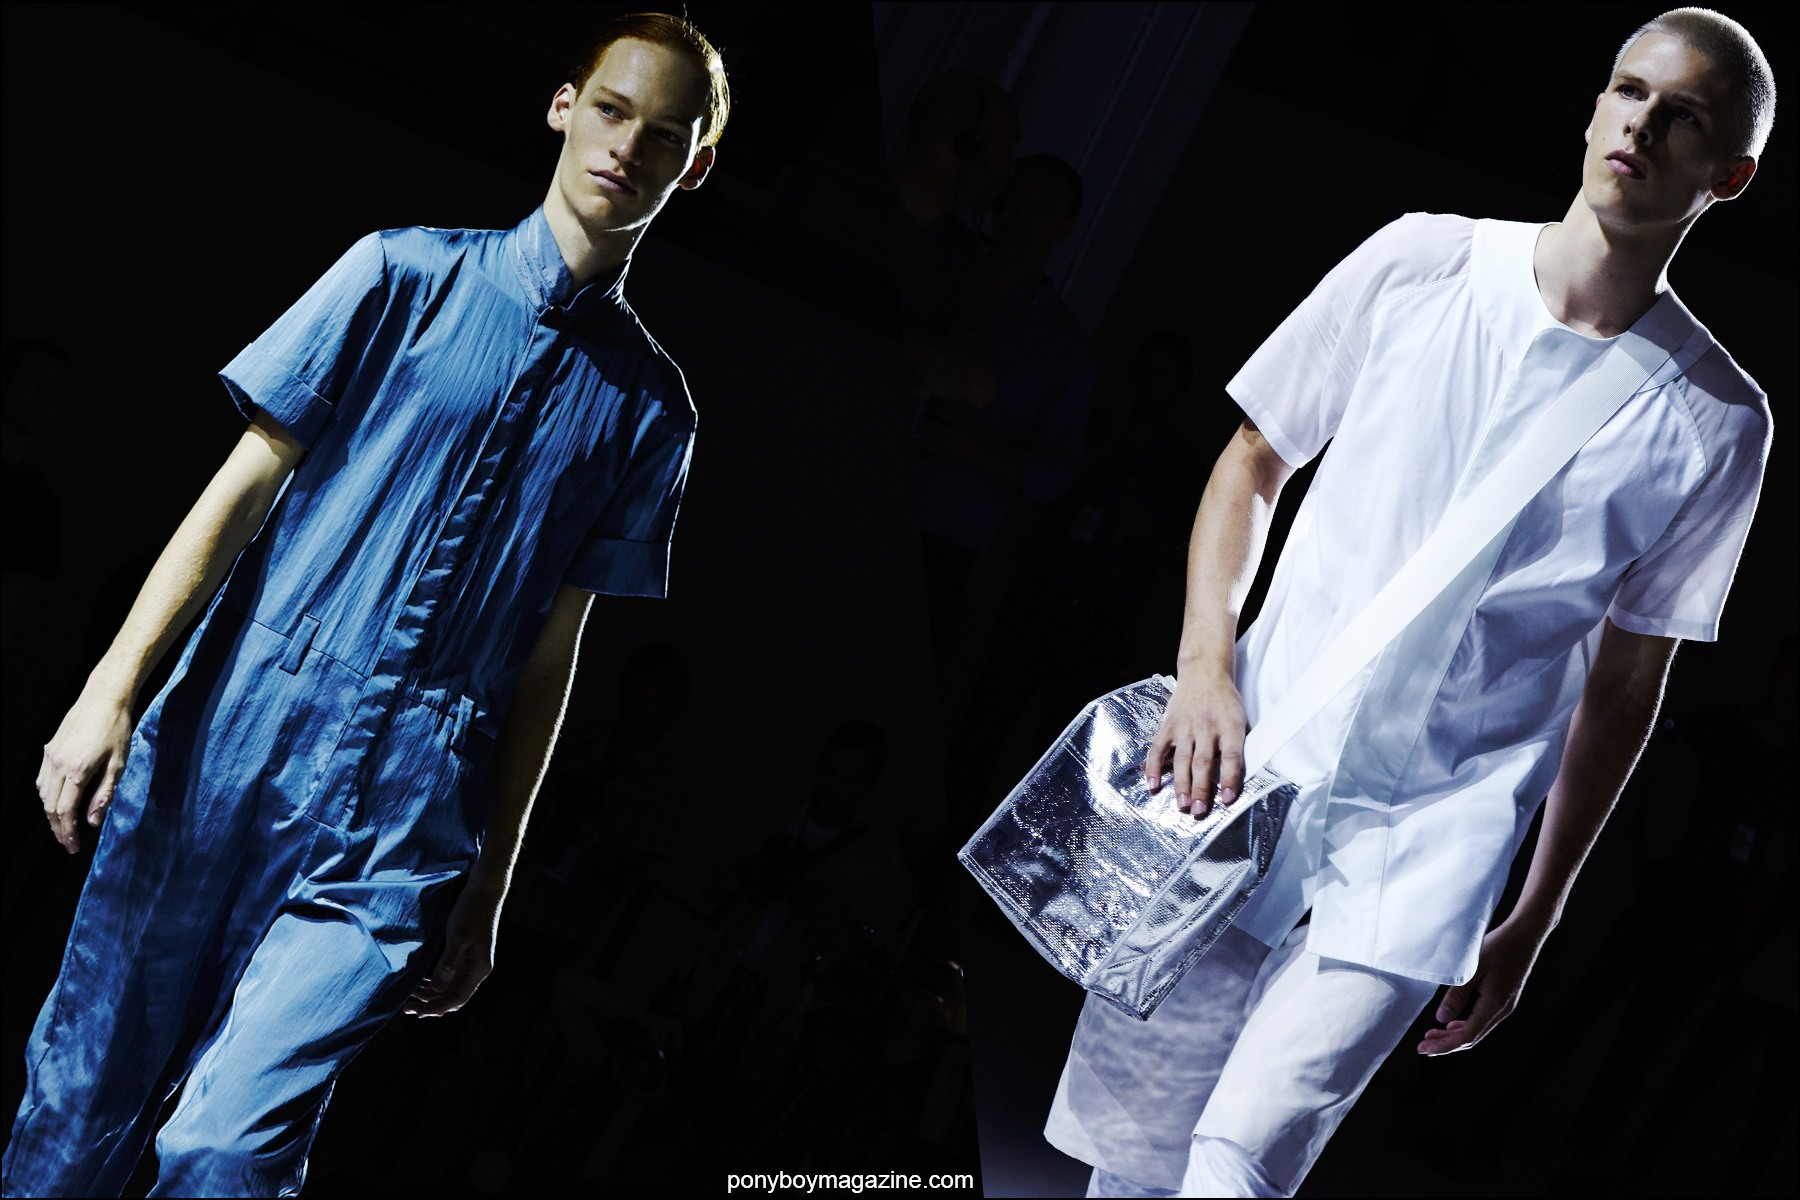 The latest from Rochambeau menswear, photographed on the runway, Spring/Summer 2016. Photographs by Alexander Thompson for Ponyboy magazine NY.